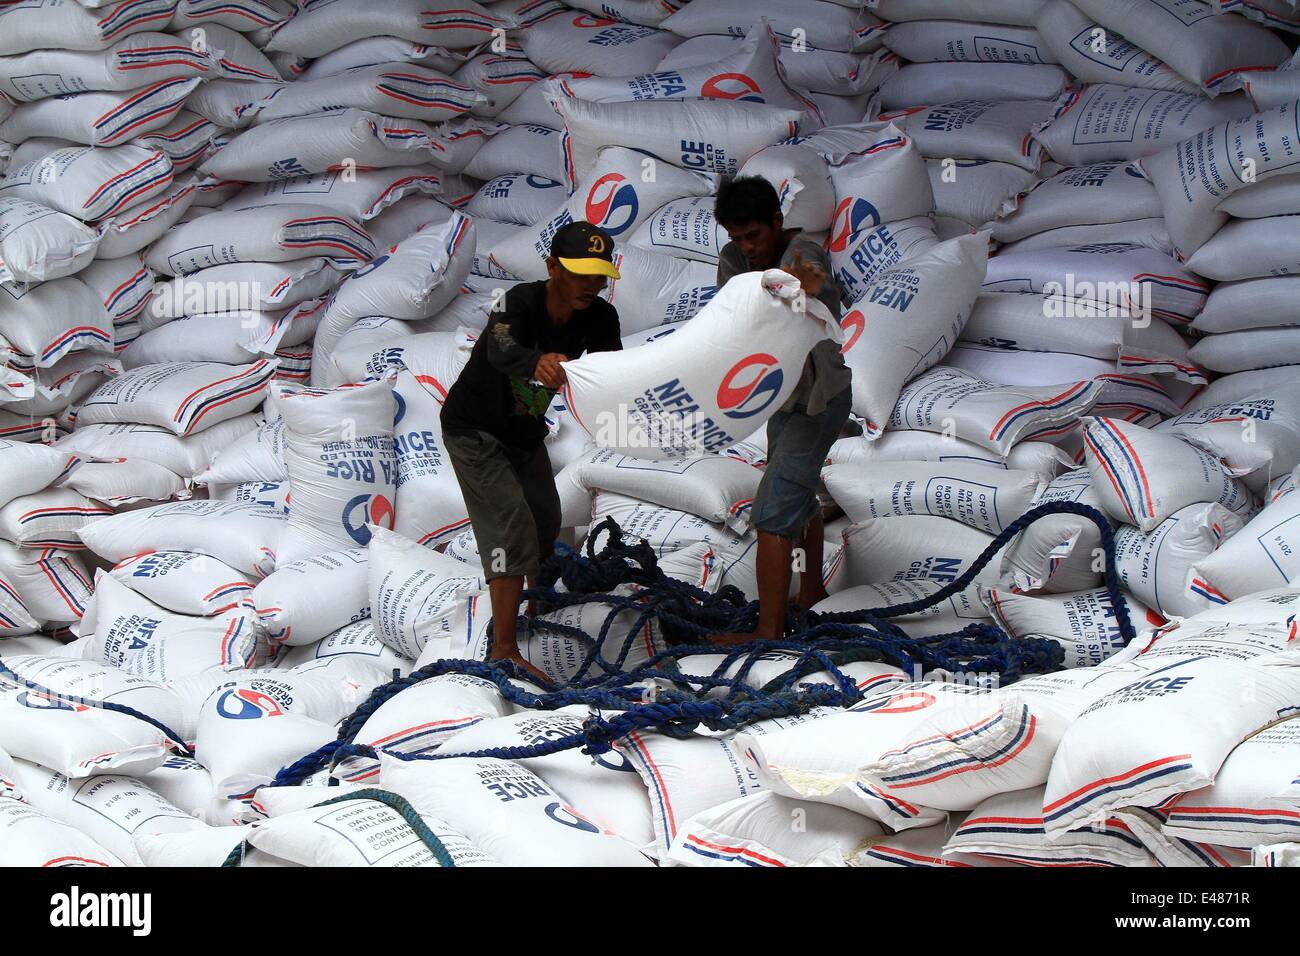 (140705) -- MANILA, July 5, 2014 (Xinhua) -- Workers unload sacks of imported rice at a port in Manila, the Philippines, - Stock Image